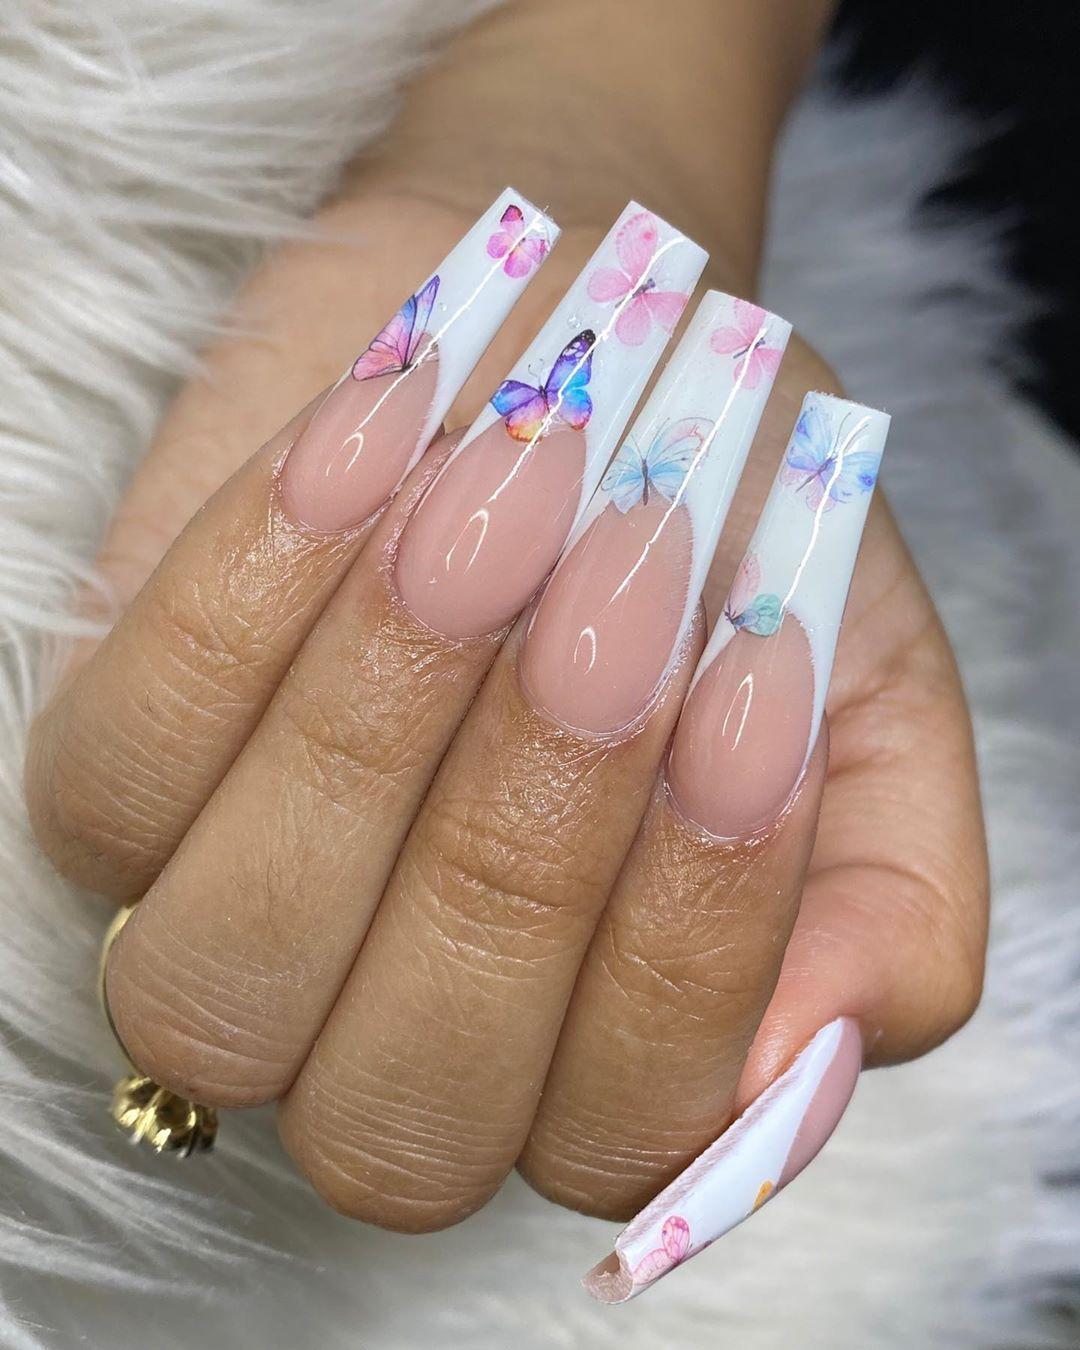 Nailedbysamanthaa On Instagram Inspiration Pinterest Acrylic Montagenail In 2020 French Tip Acrylic Nails Coffin Nails Designs Summer Pretty Acrylic Nails